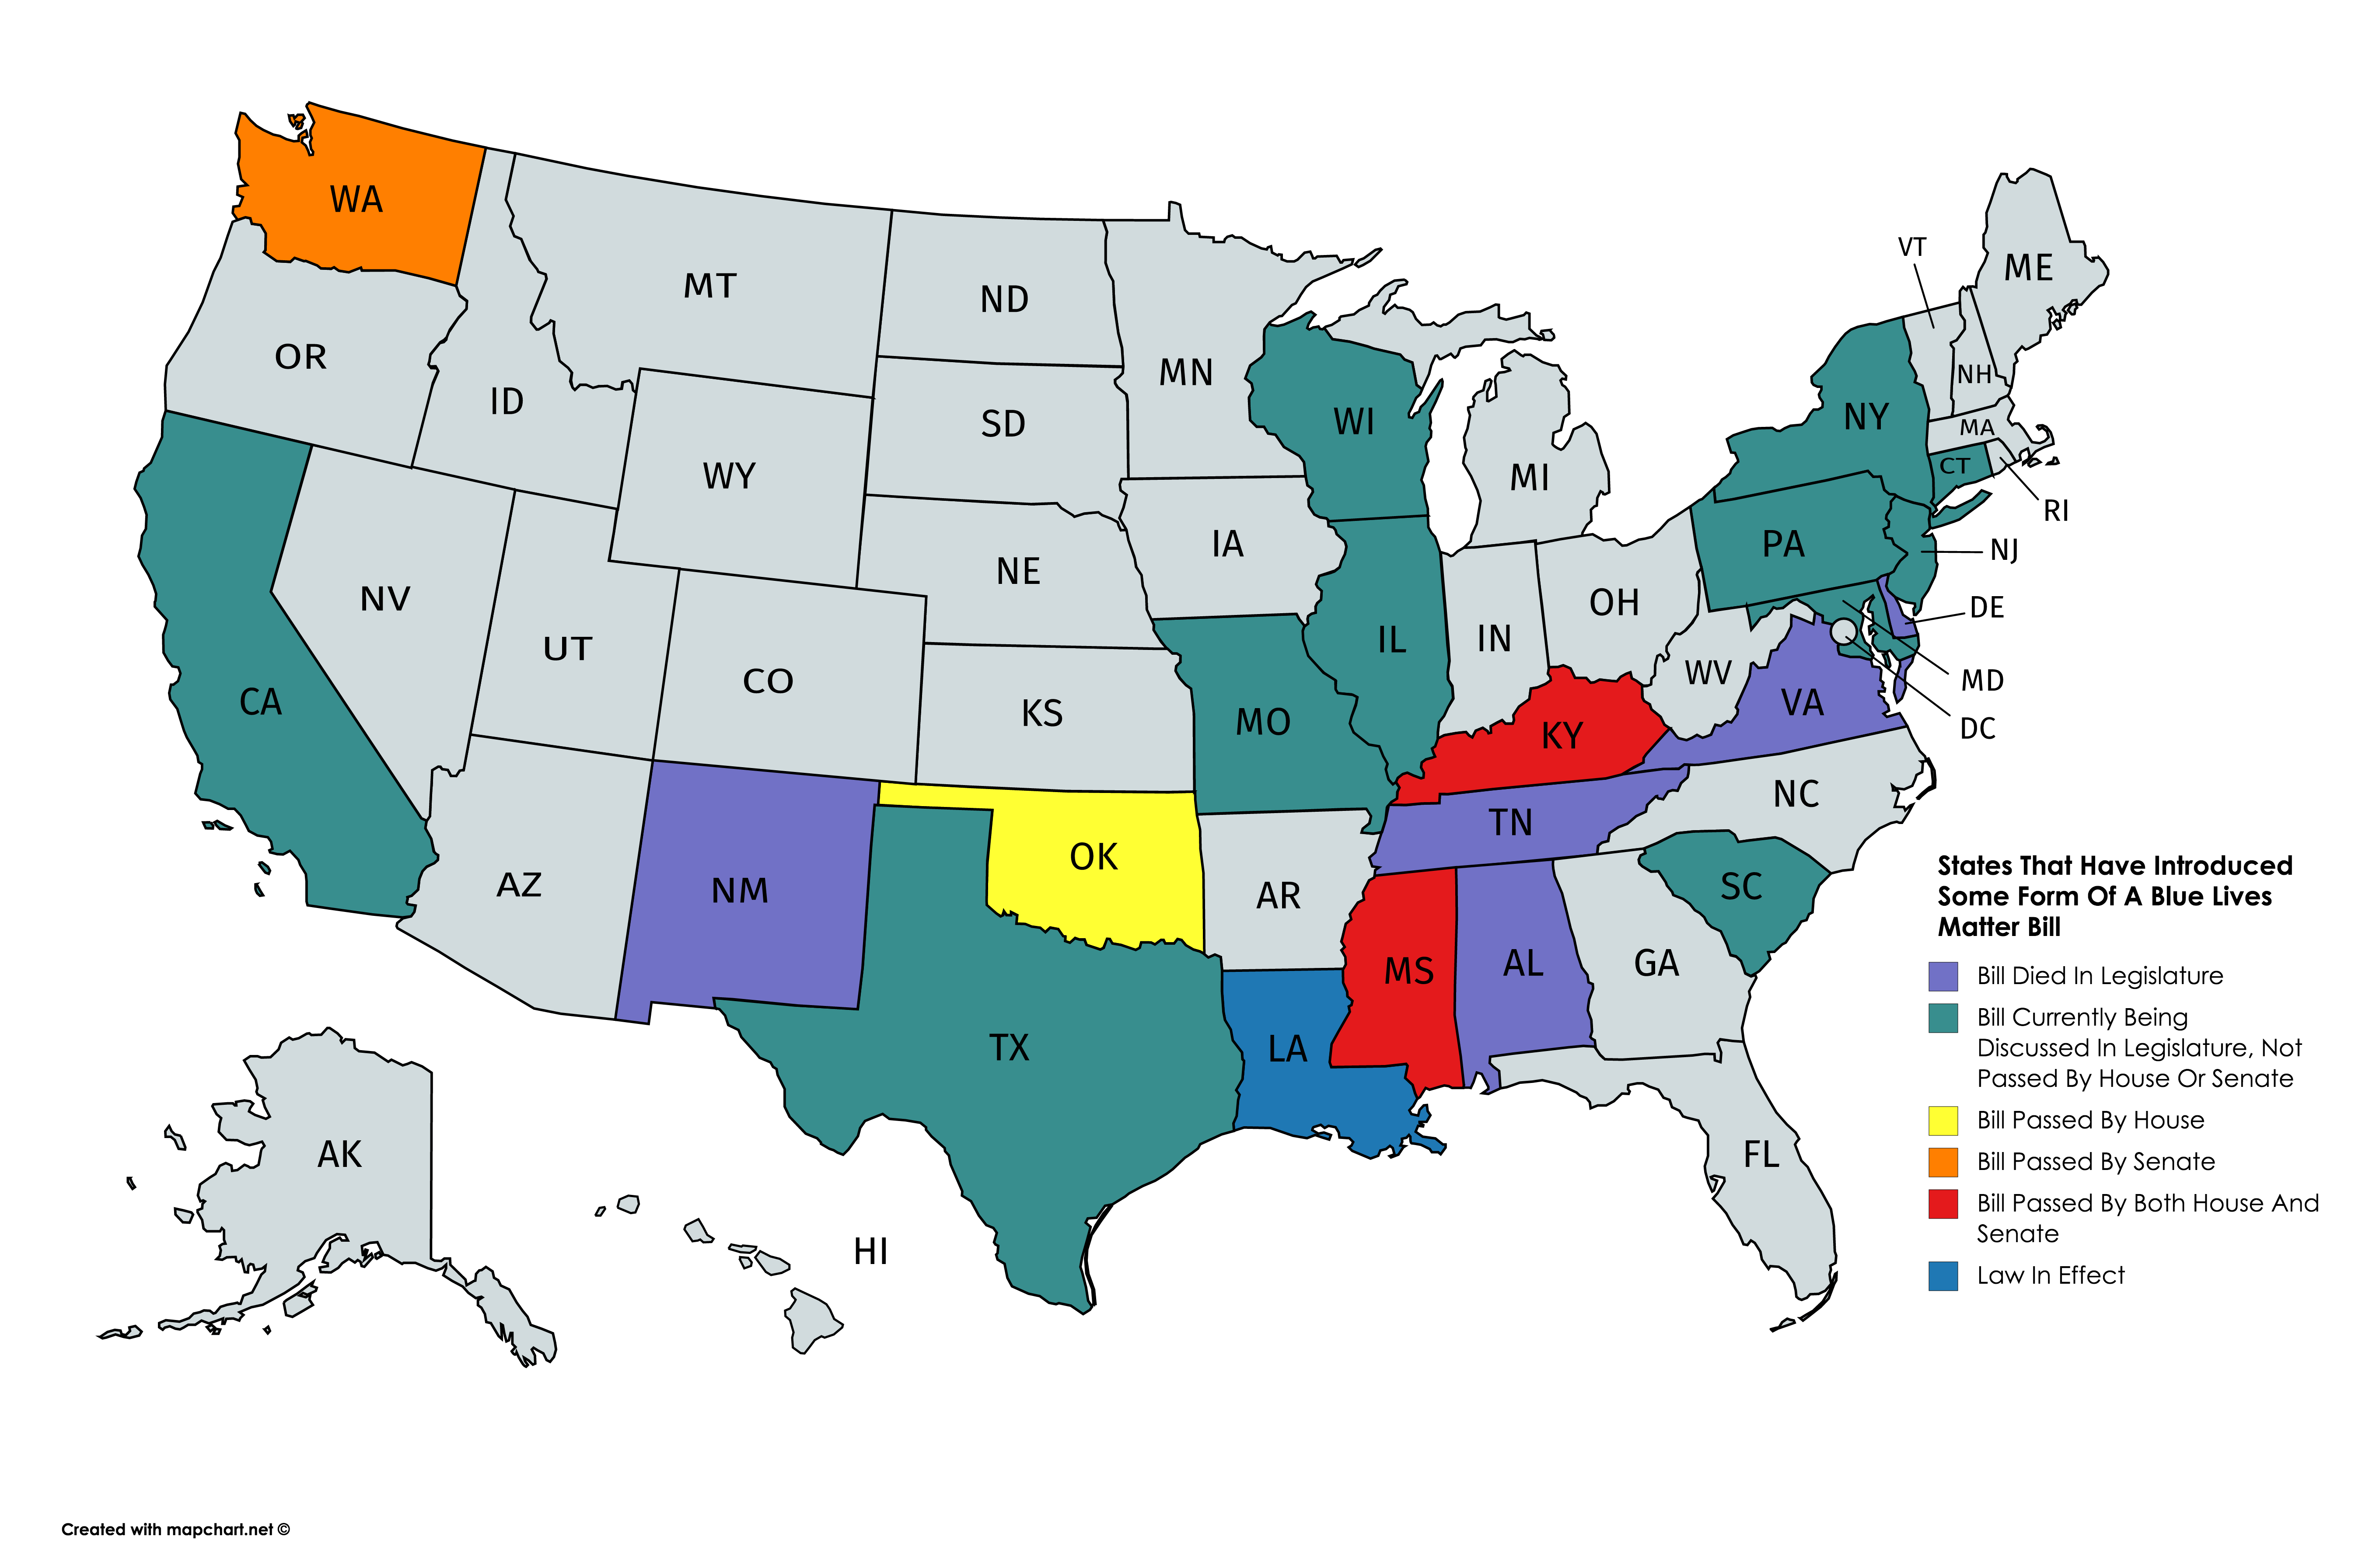 States That Have Introduced Some Form Of A Blue Lives Matter Bill (1)